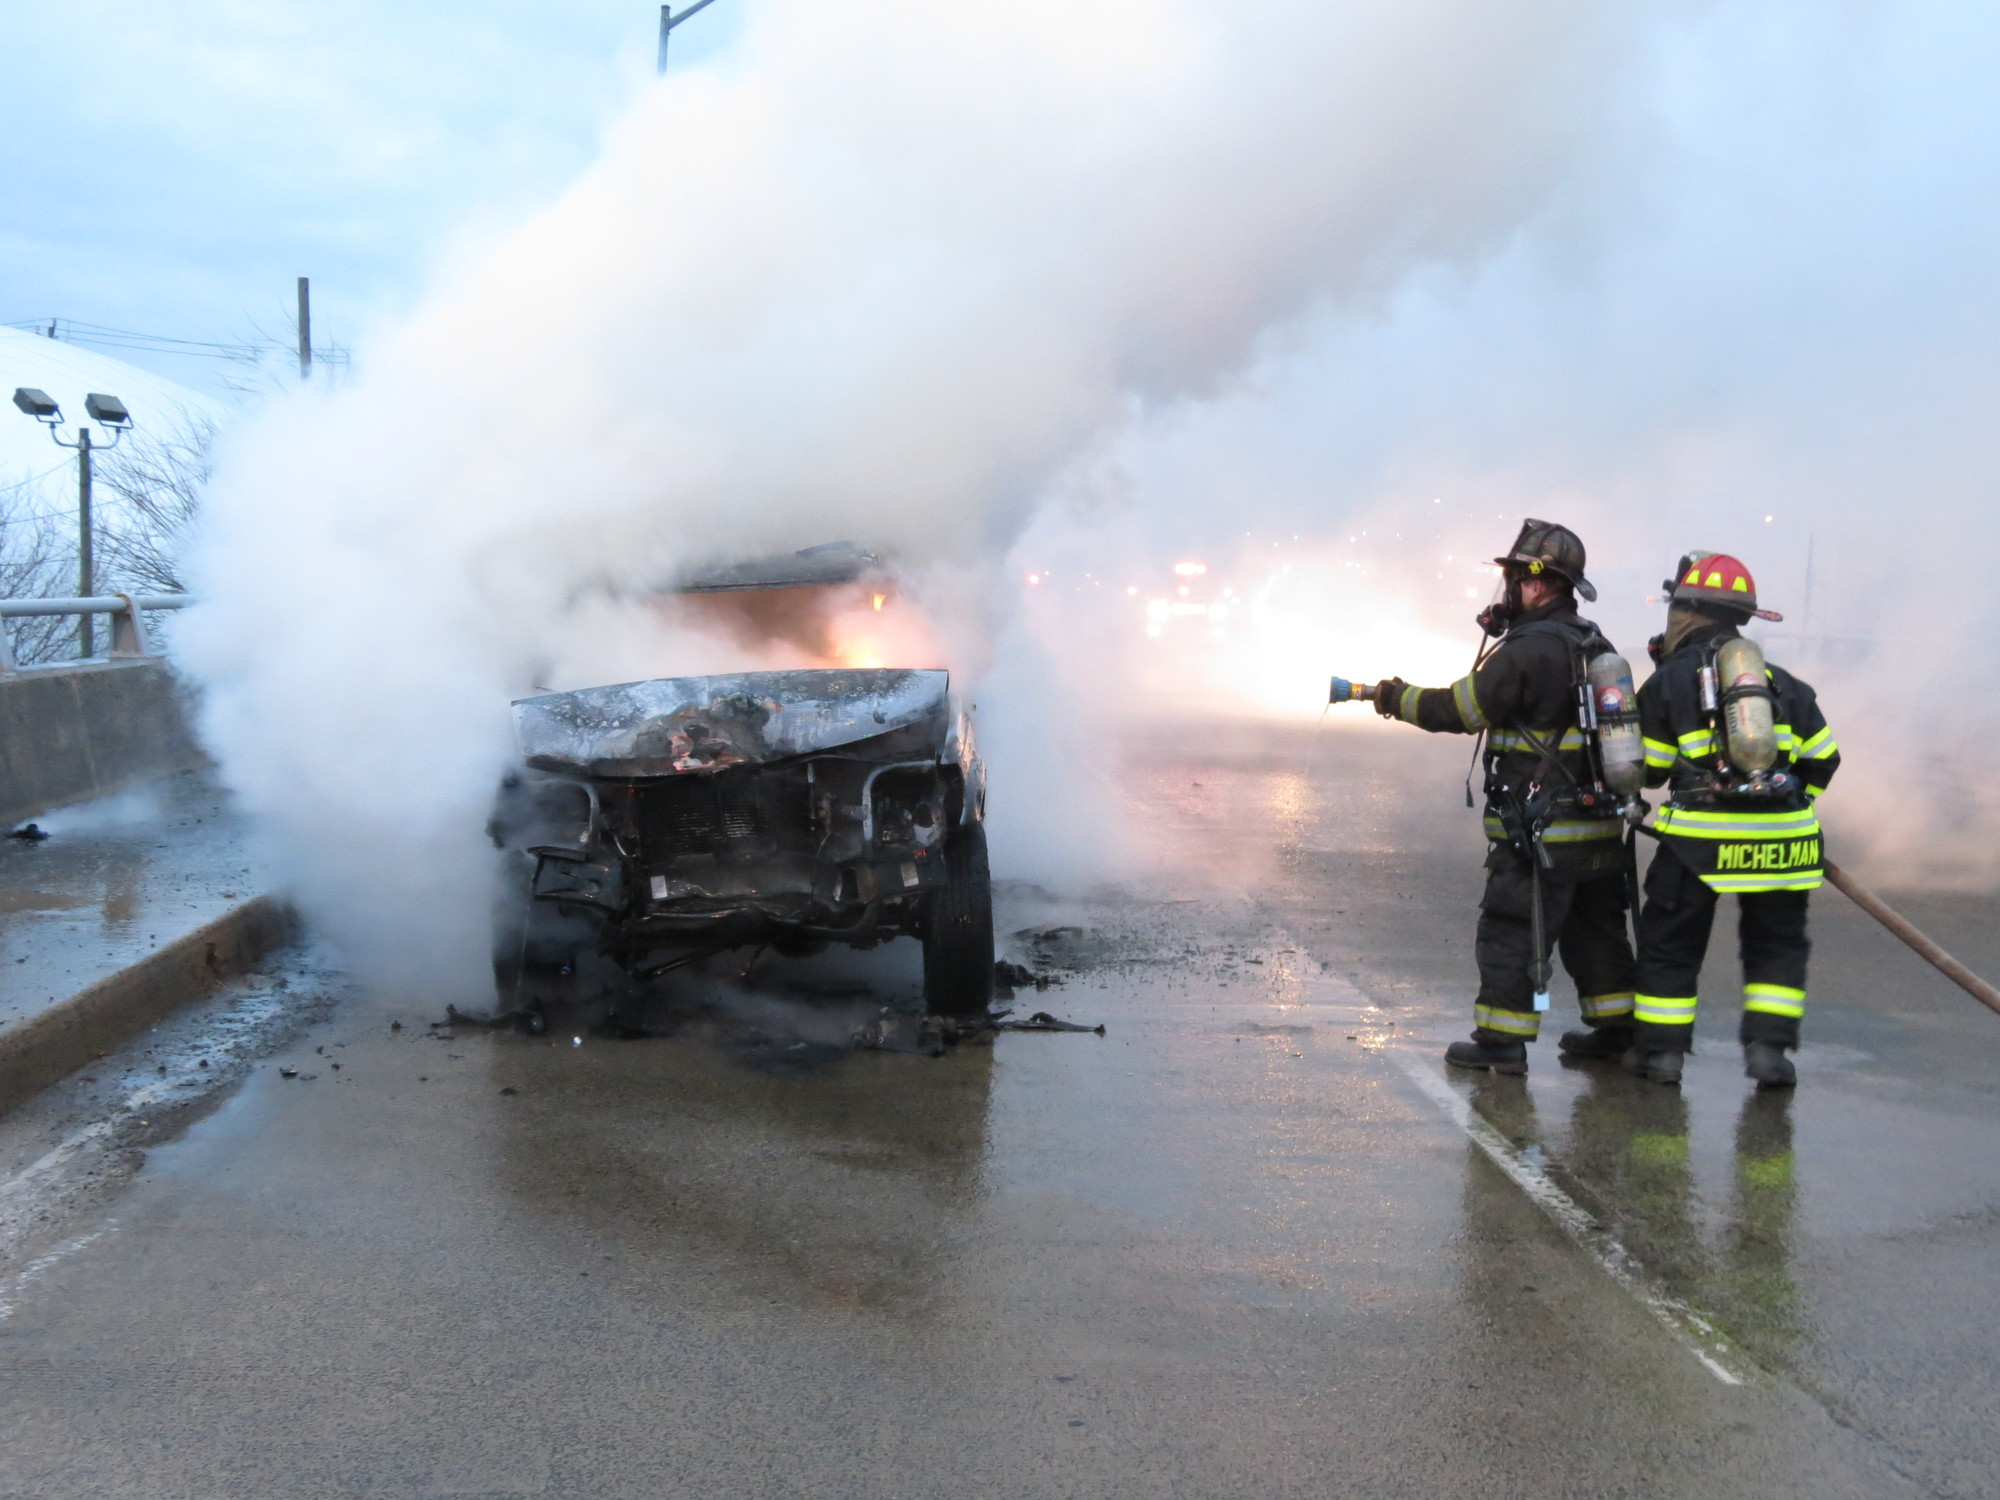 Island Park firefighters responded to the scene of a car fire on the Long Beach Bridge on Friday morning.